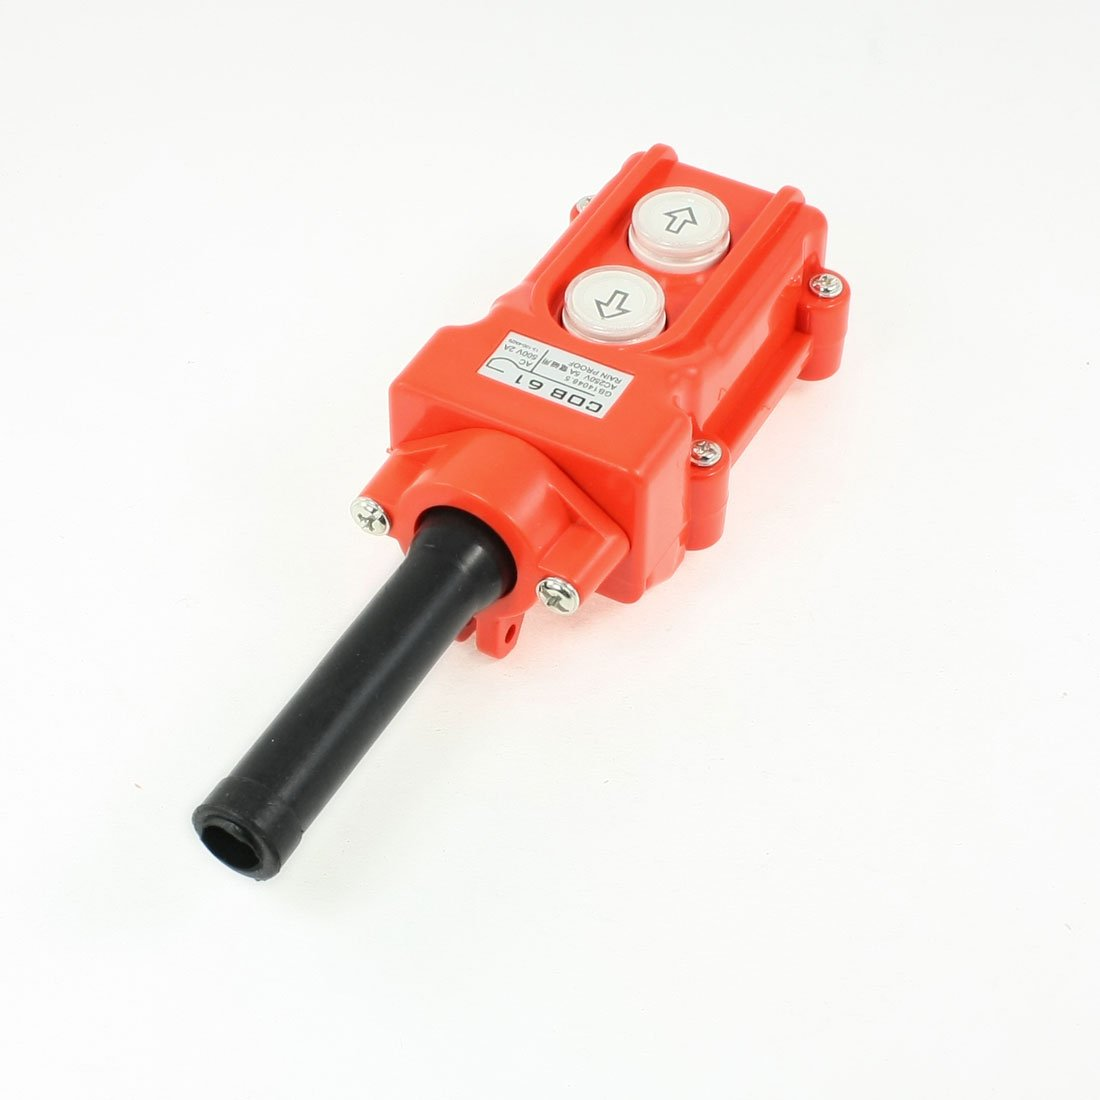 Uxcell Water Proof Hoist Crane Pendant Up Down Station Pushbutton Switch